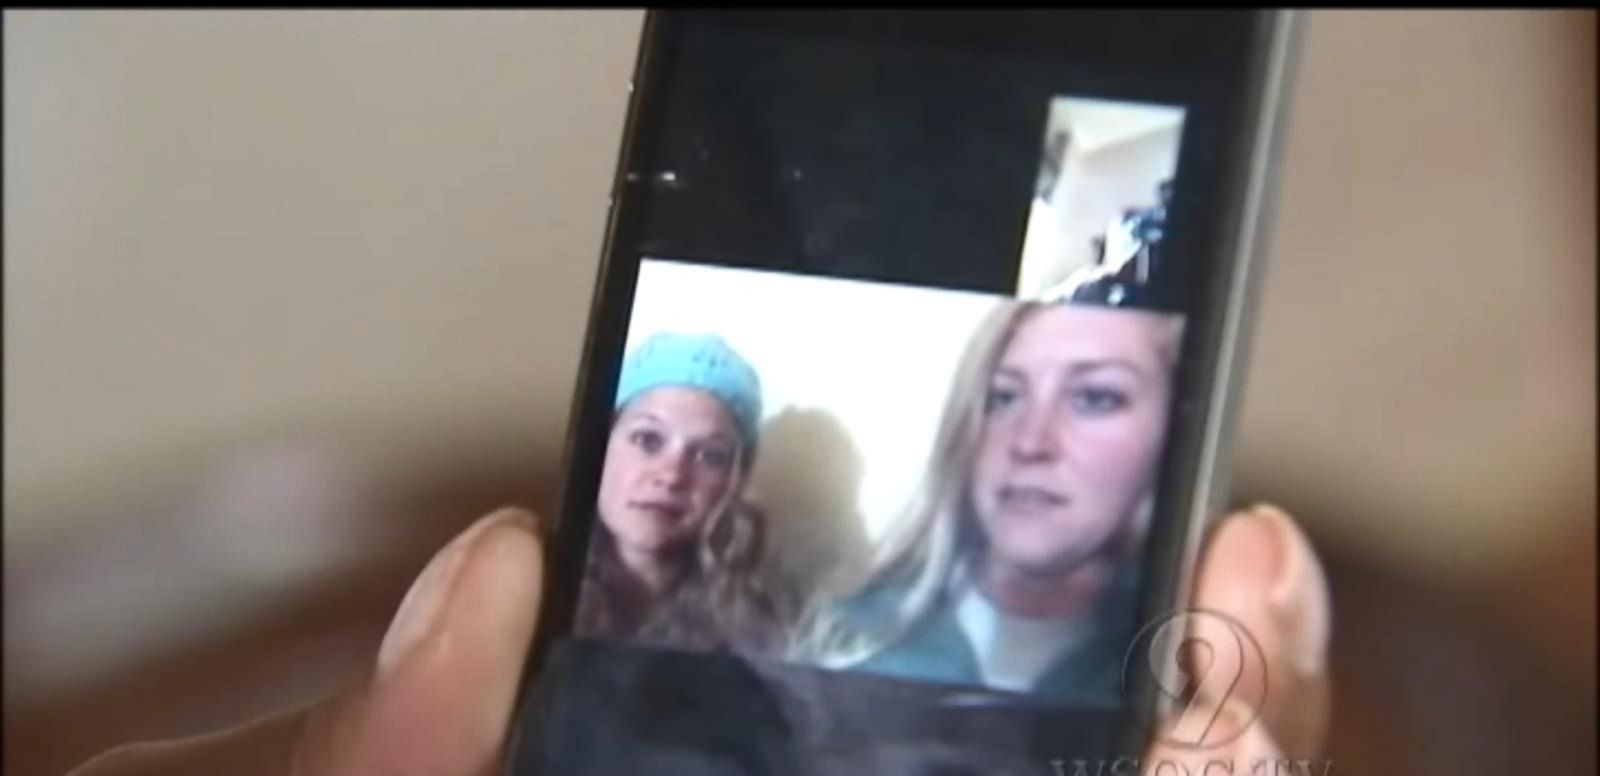 VIDEO: American in Nepal Phones Home After Earthquake